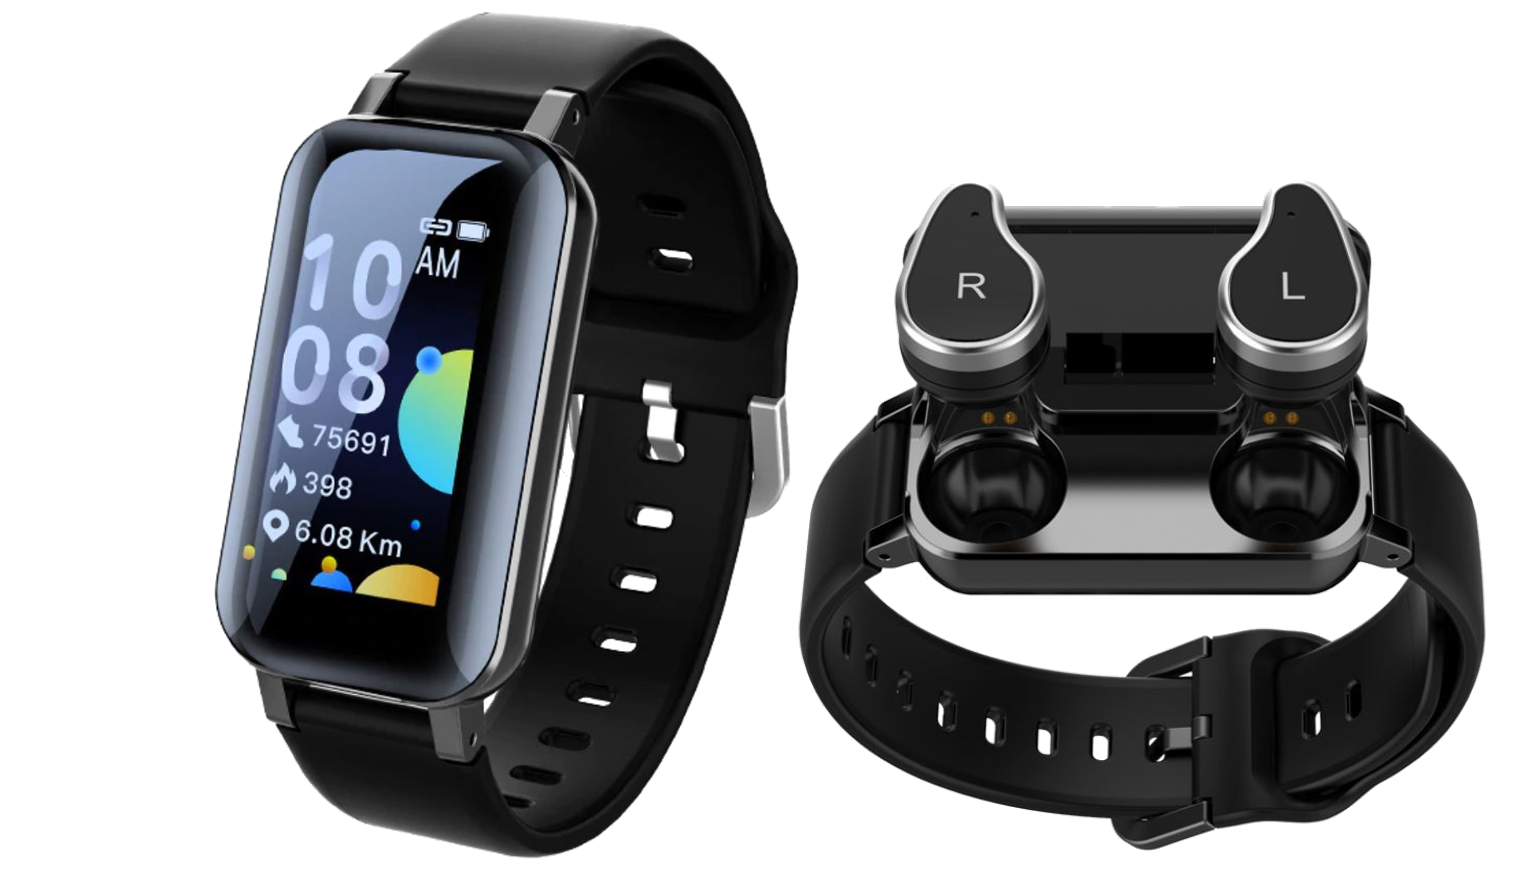 I FUTURE WATCH™: an intelligent 2 in 1 smartwatch and TWS earbuds integrated device.